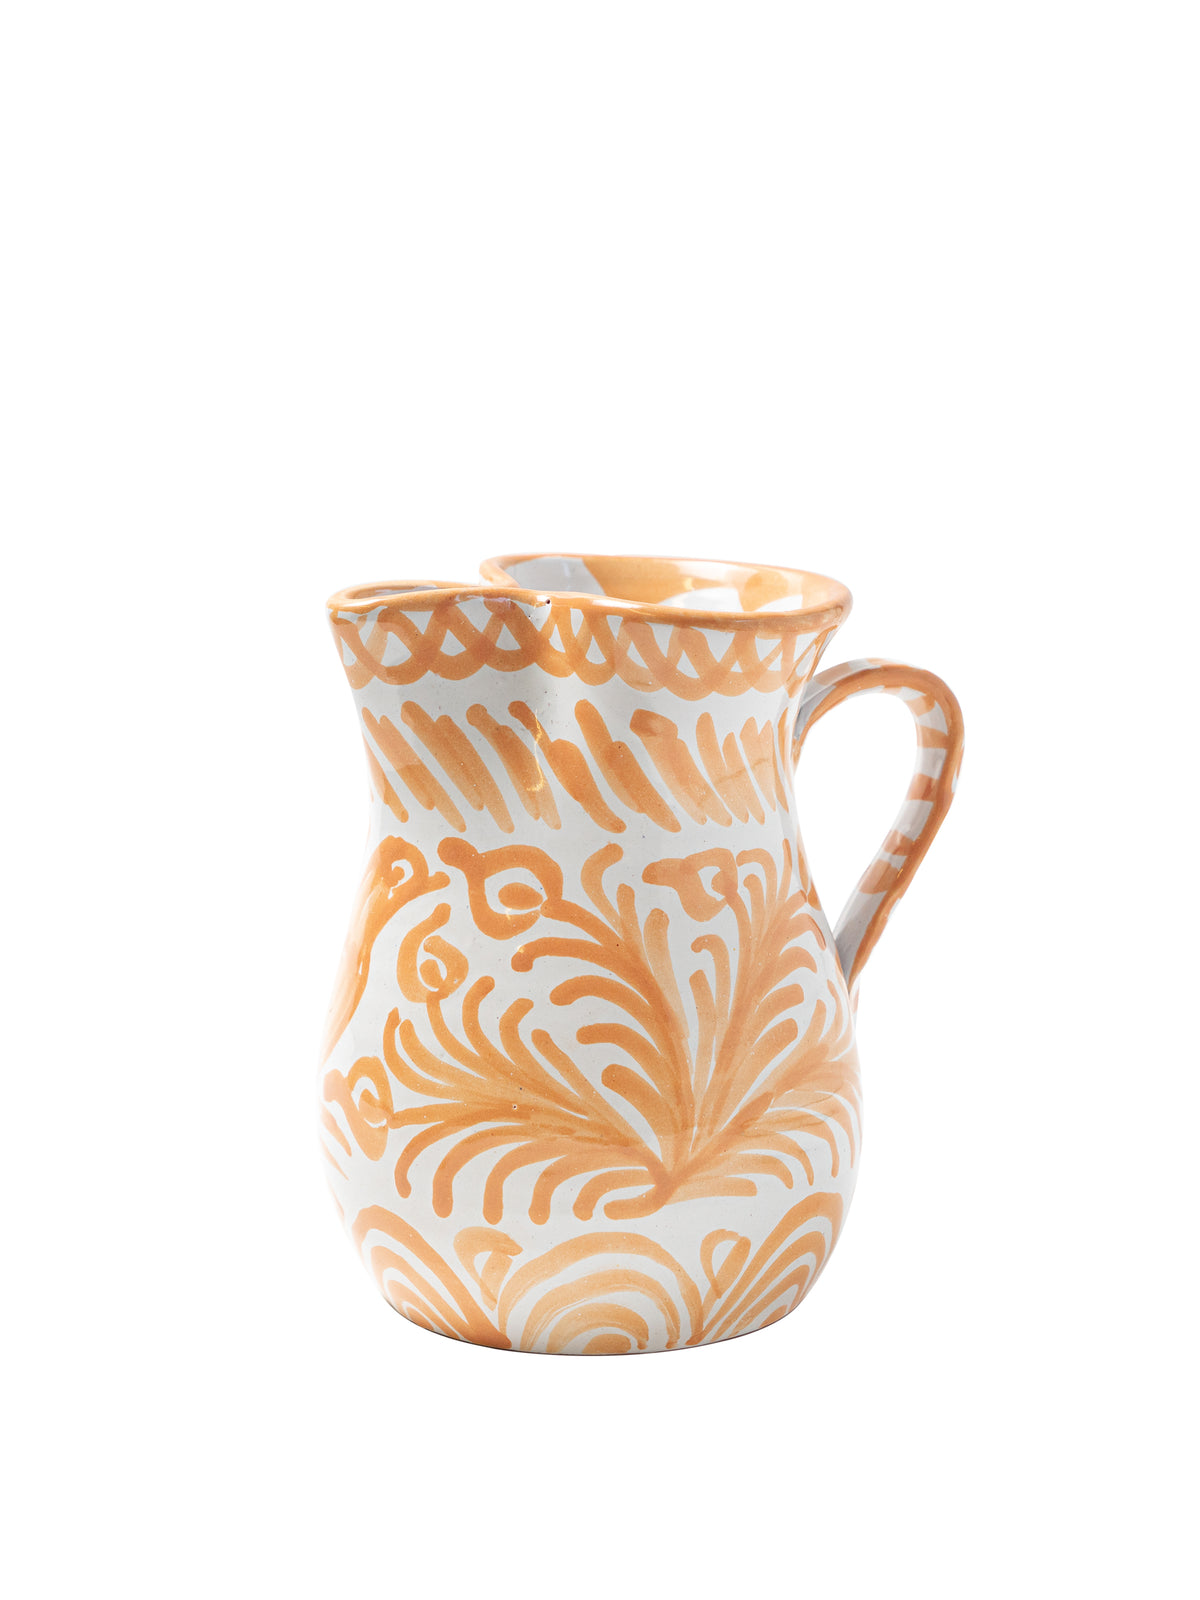 Casa Melocoton Small Pitcher with Hand-painted Designs